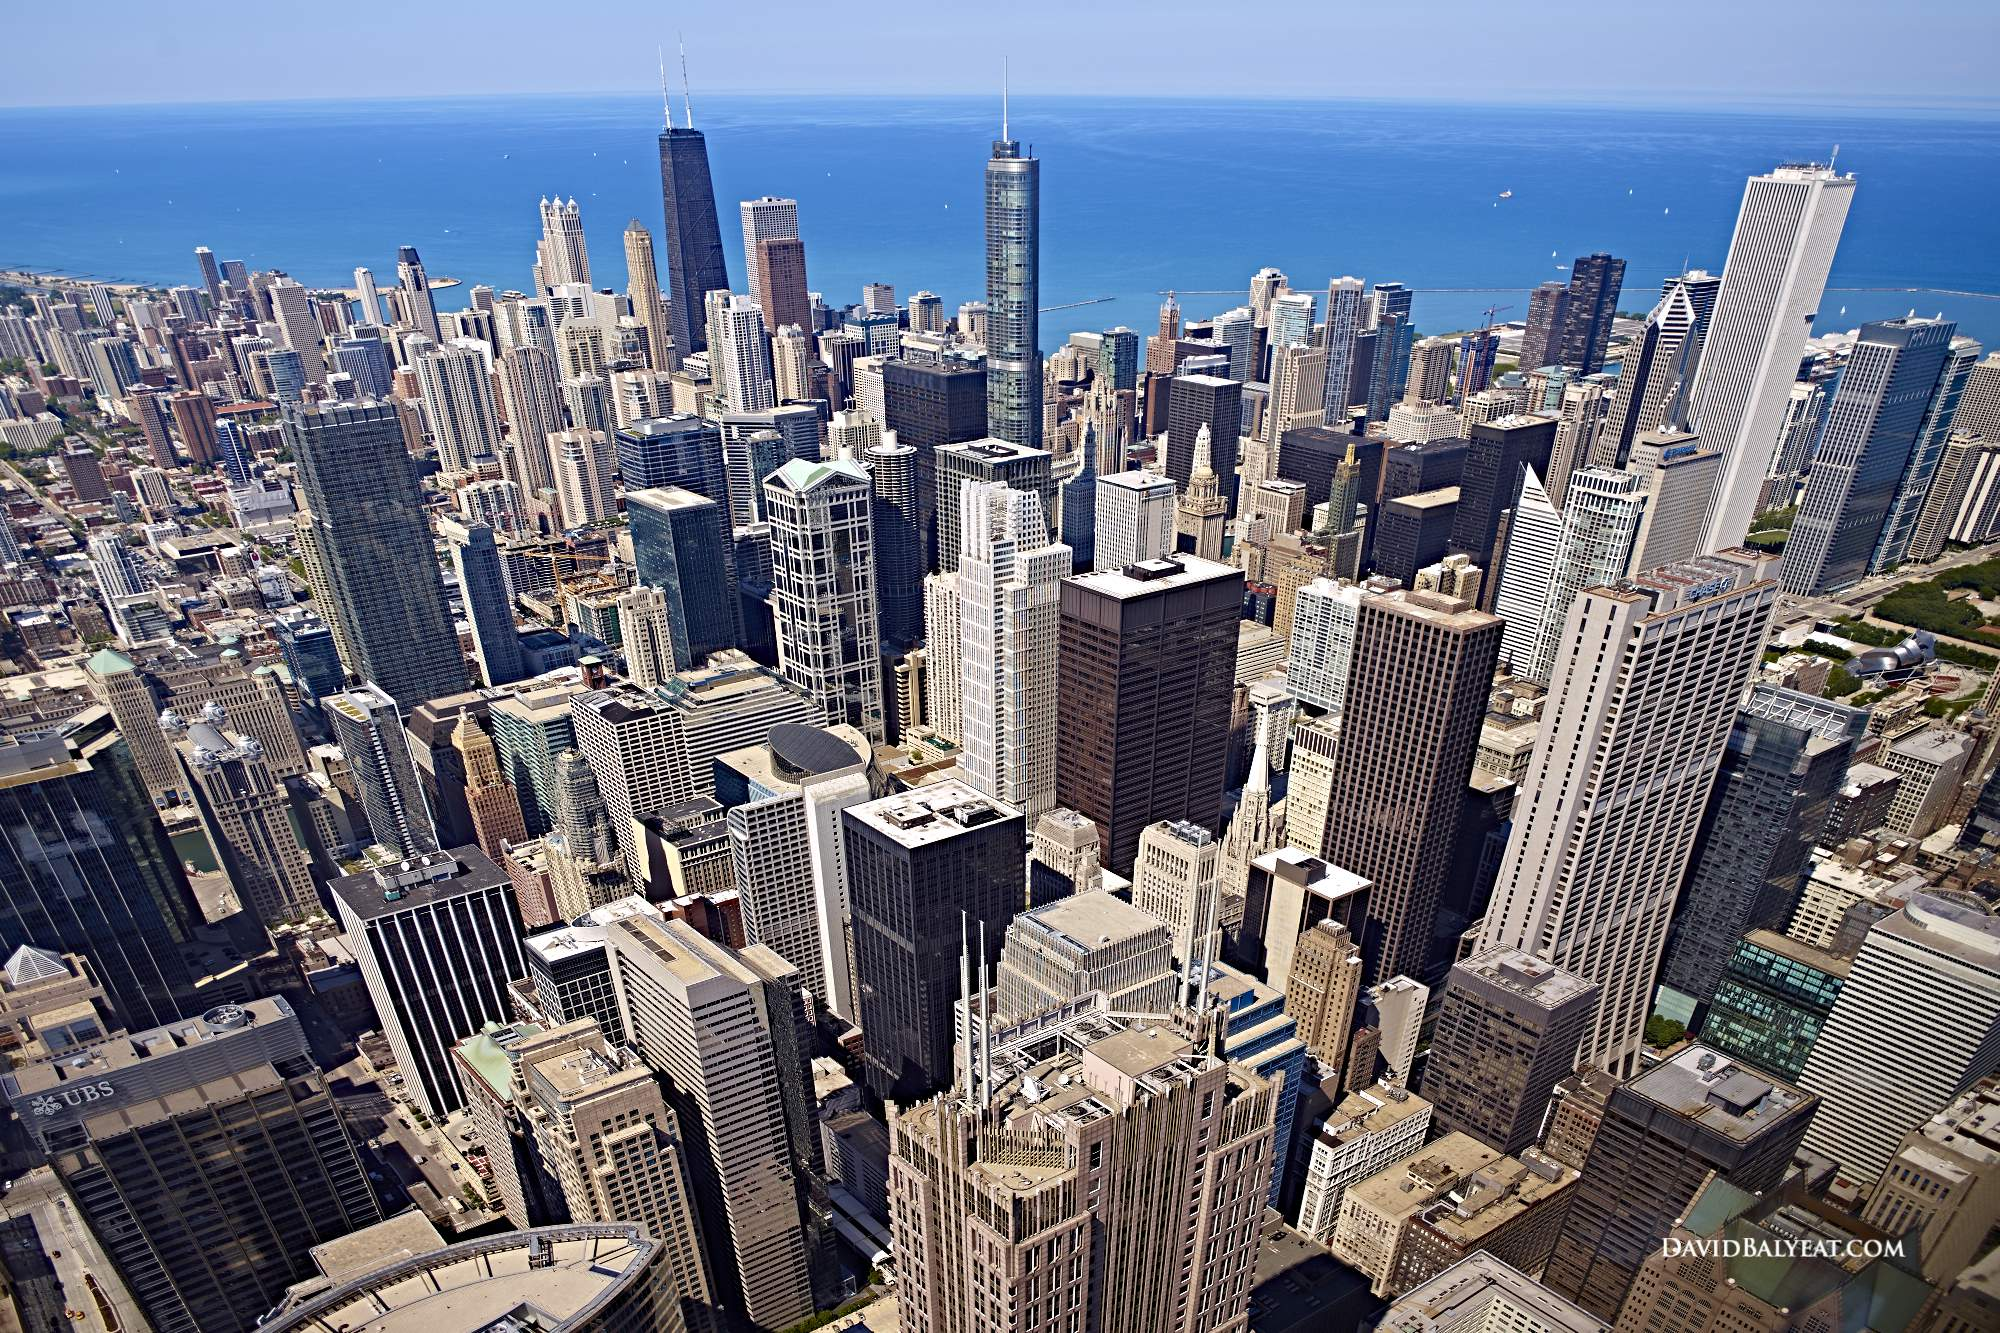 Chicago skyline SkyDeck Lake Michigan high-definition HD professional landscape photography